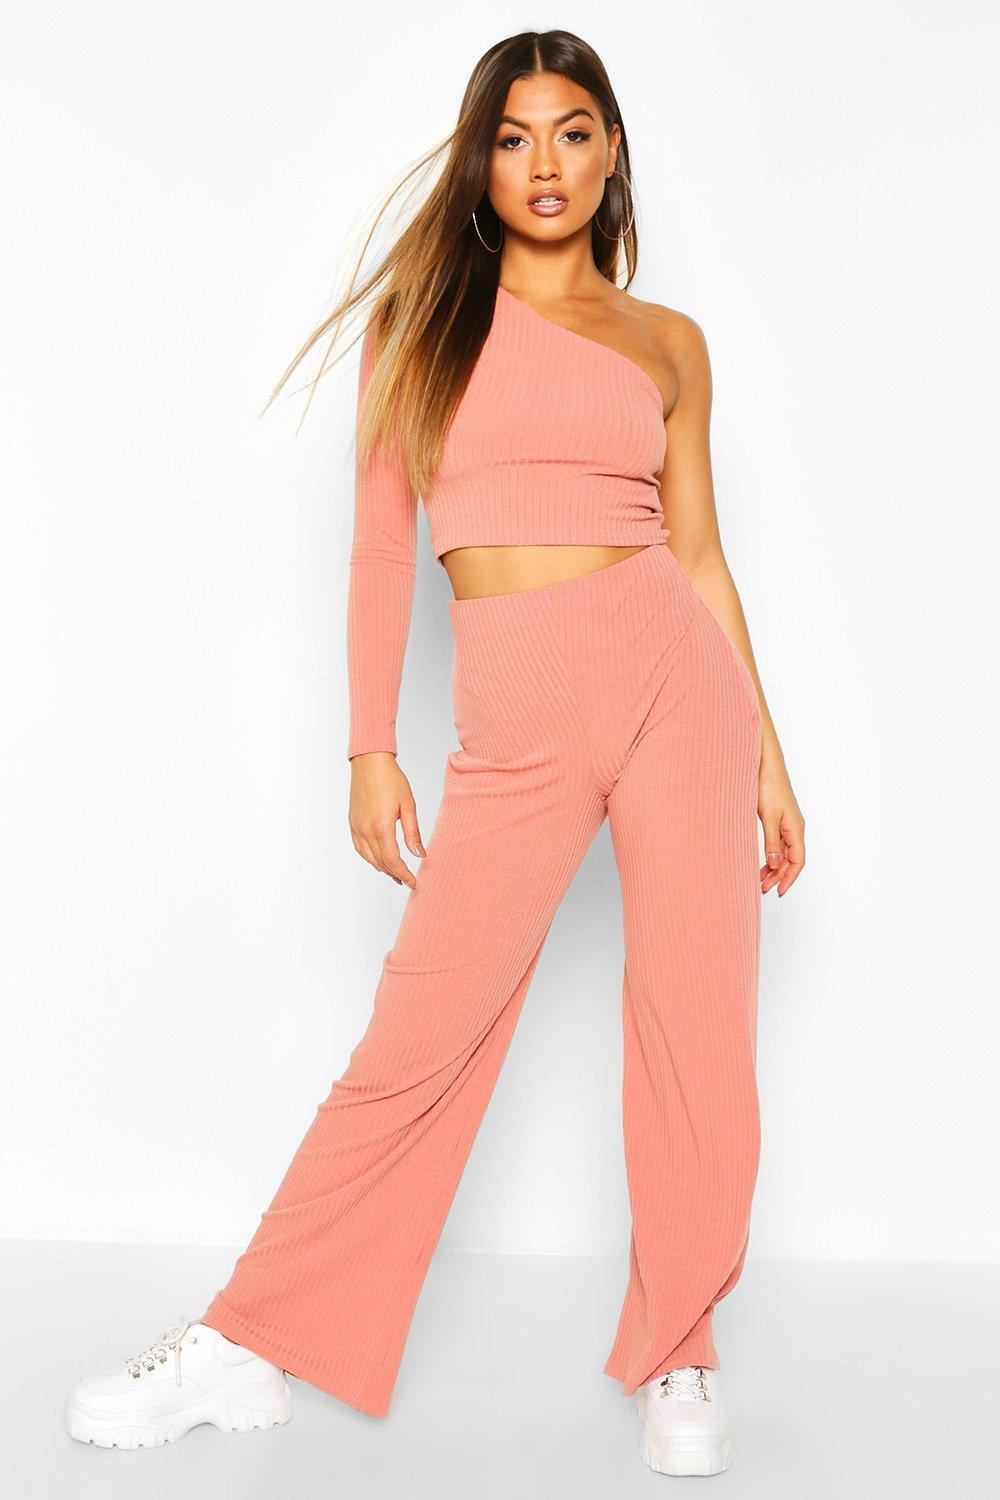 boohoo Womens One Shoulder Ribbed Top & Trouser Co-Ord - Pink - 12, Pink